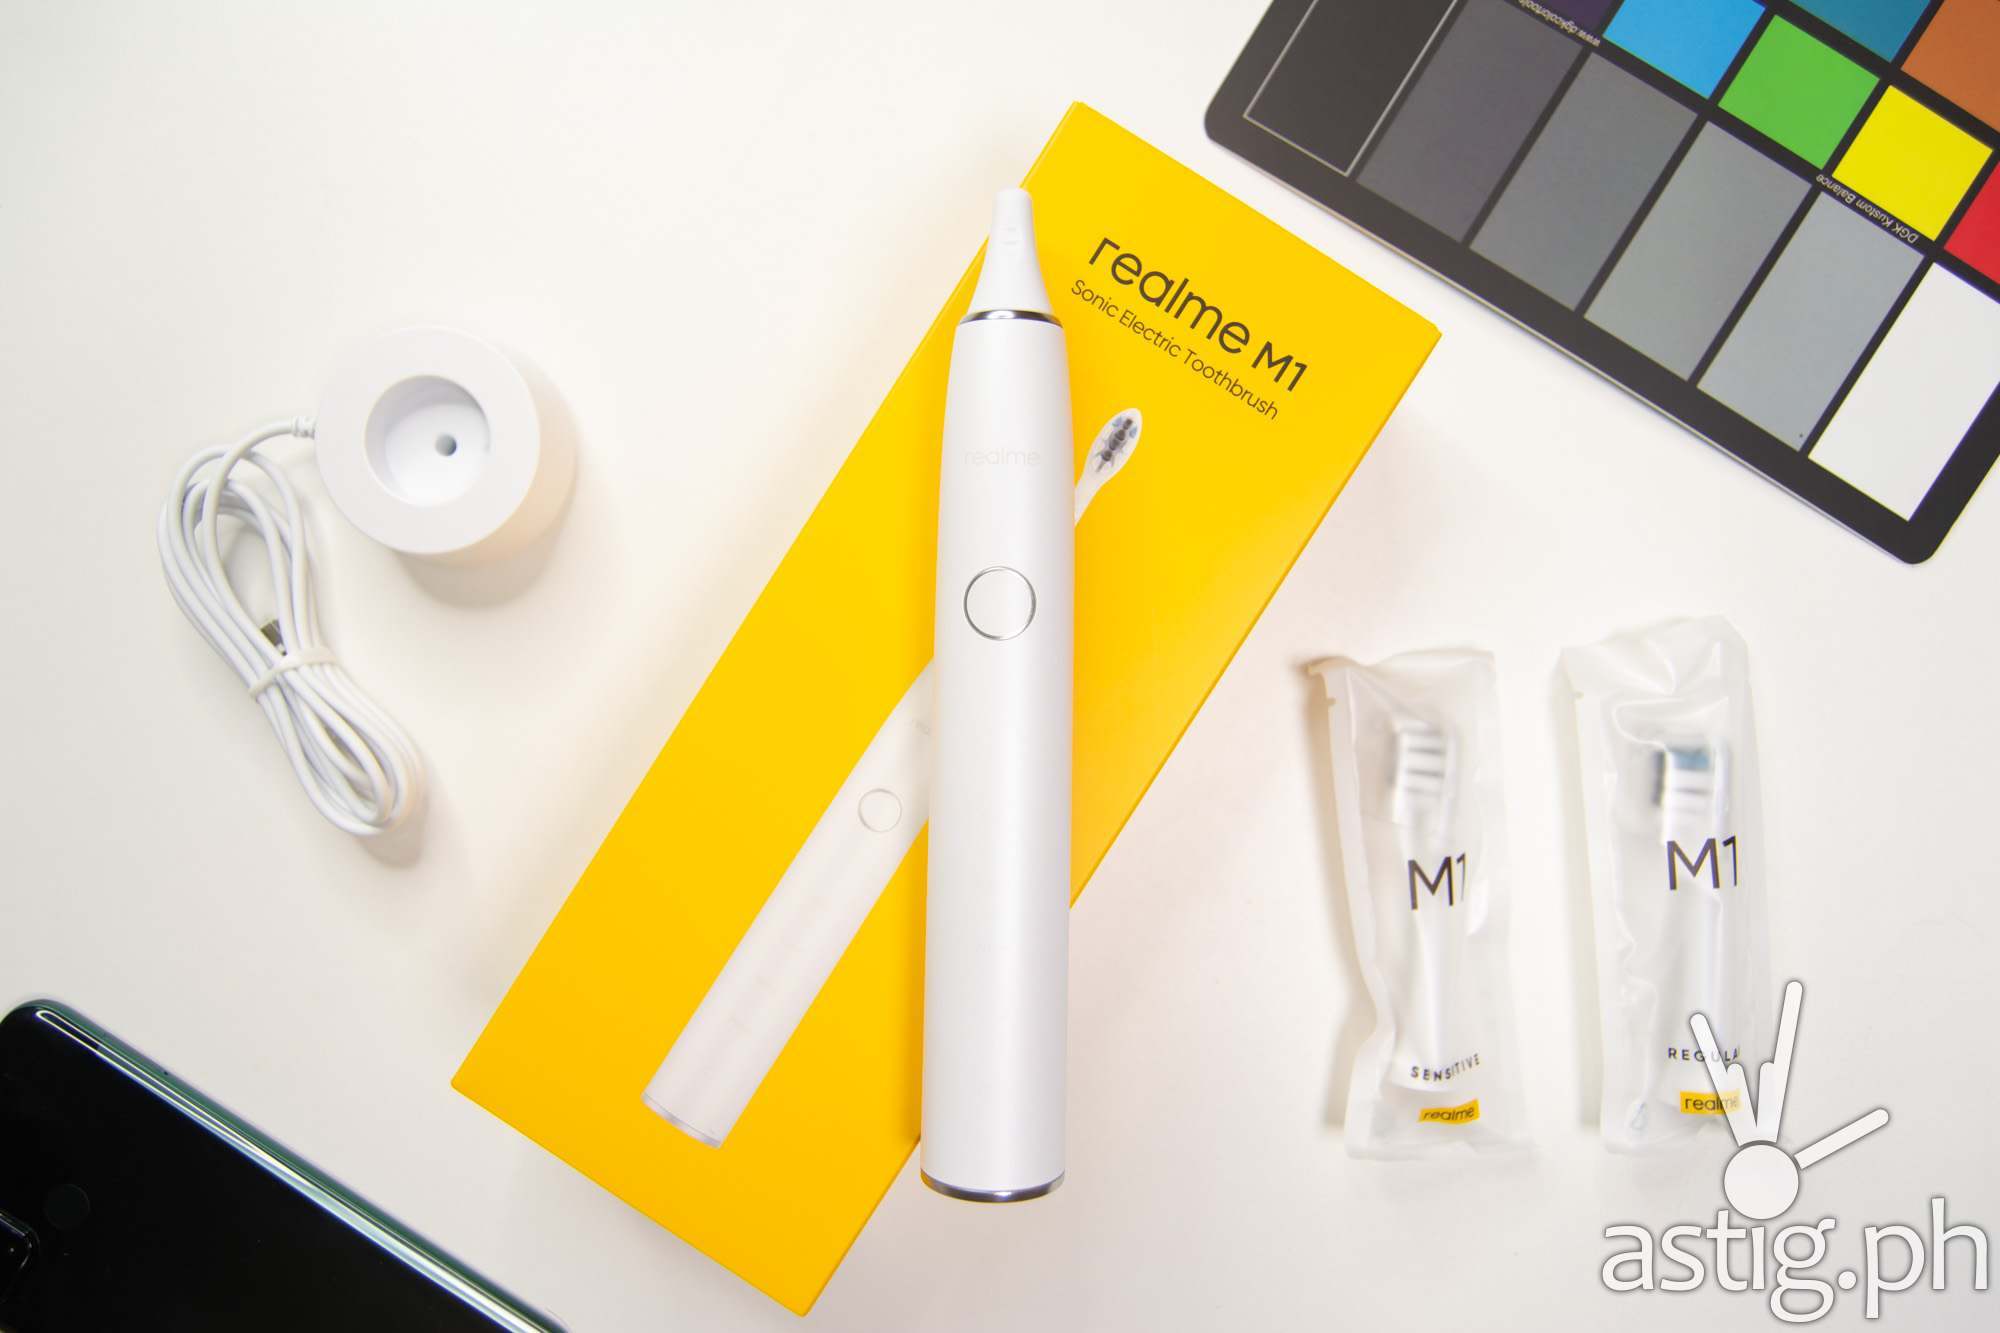 Top flatlay - realme M1 Sonic Electric Toothbrush (Philippines)